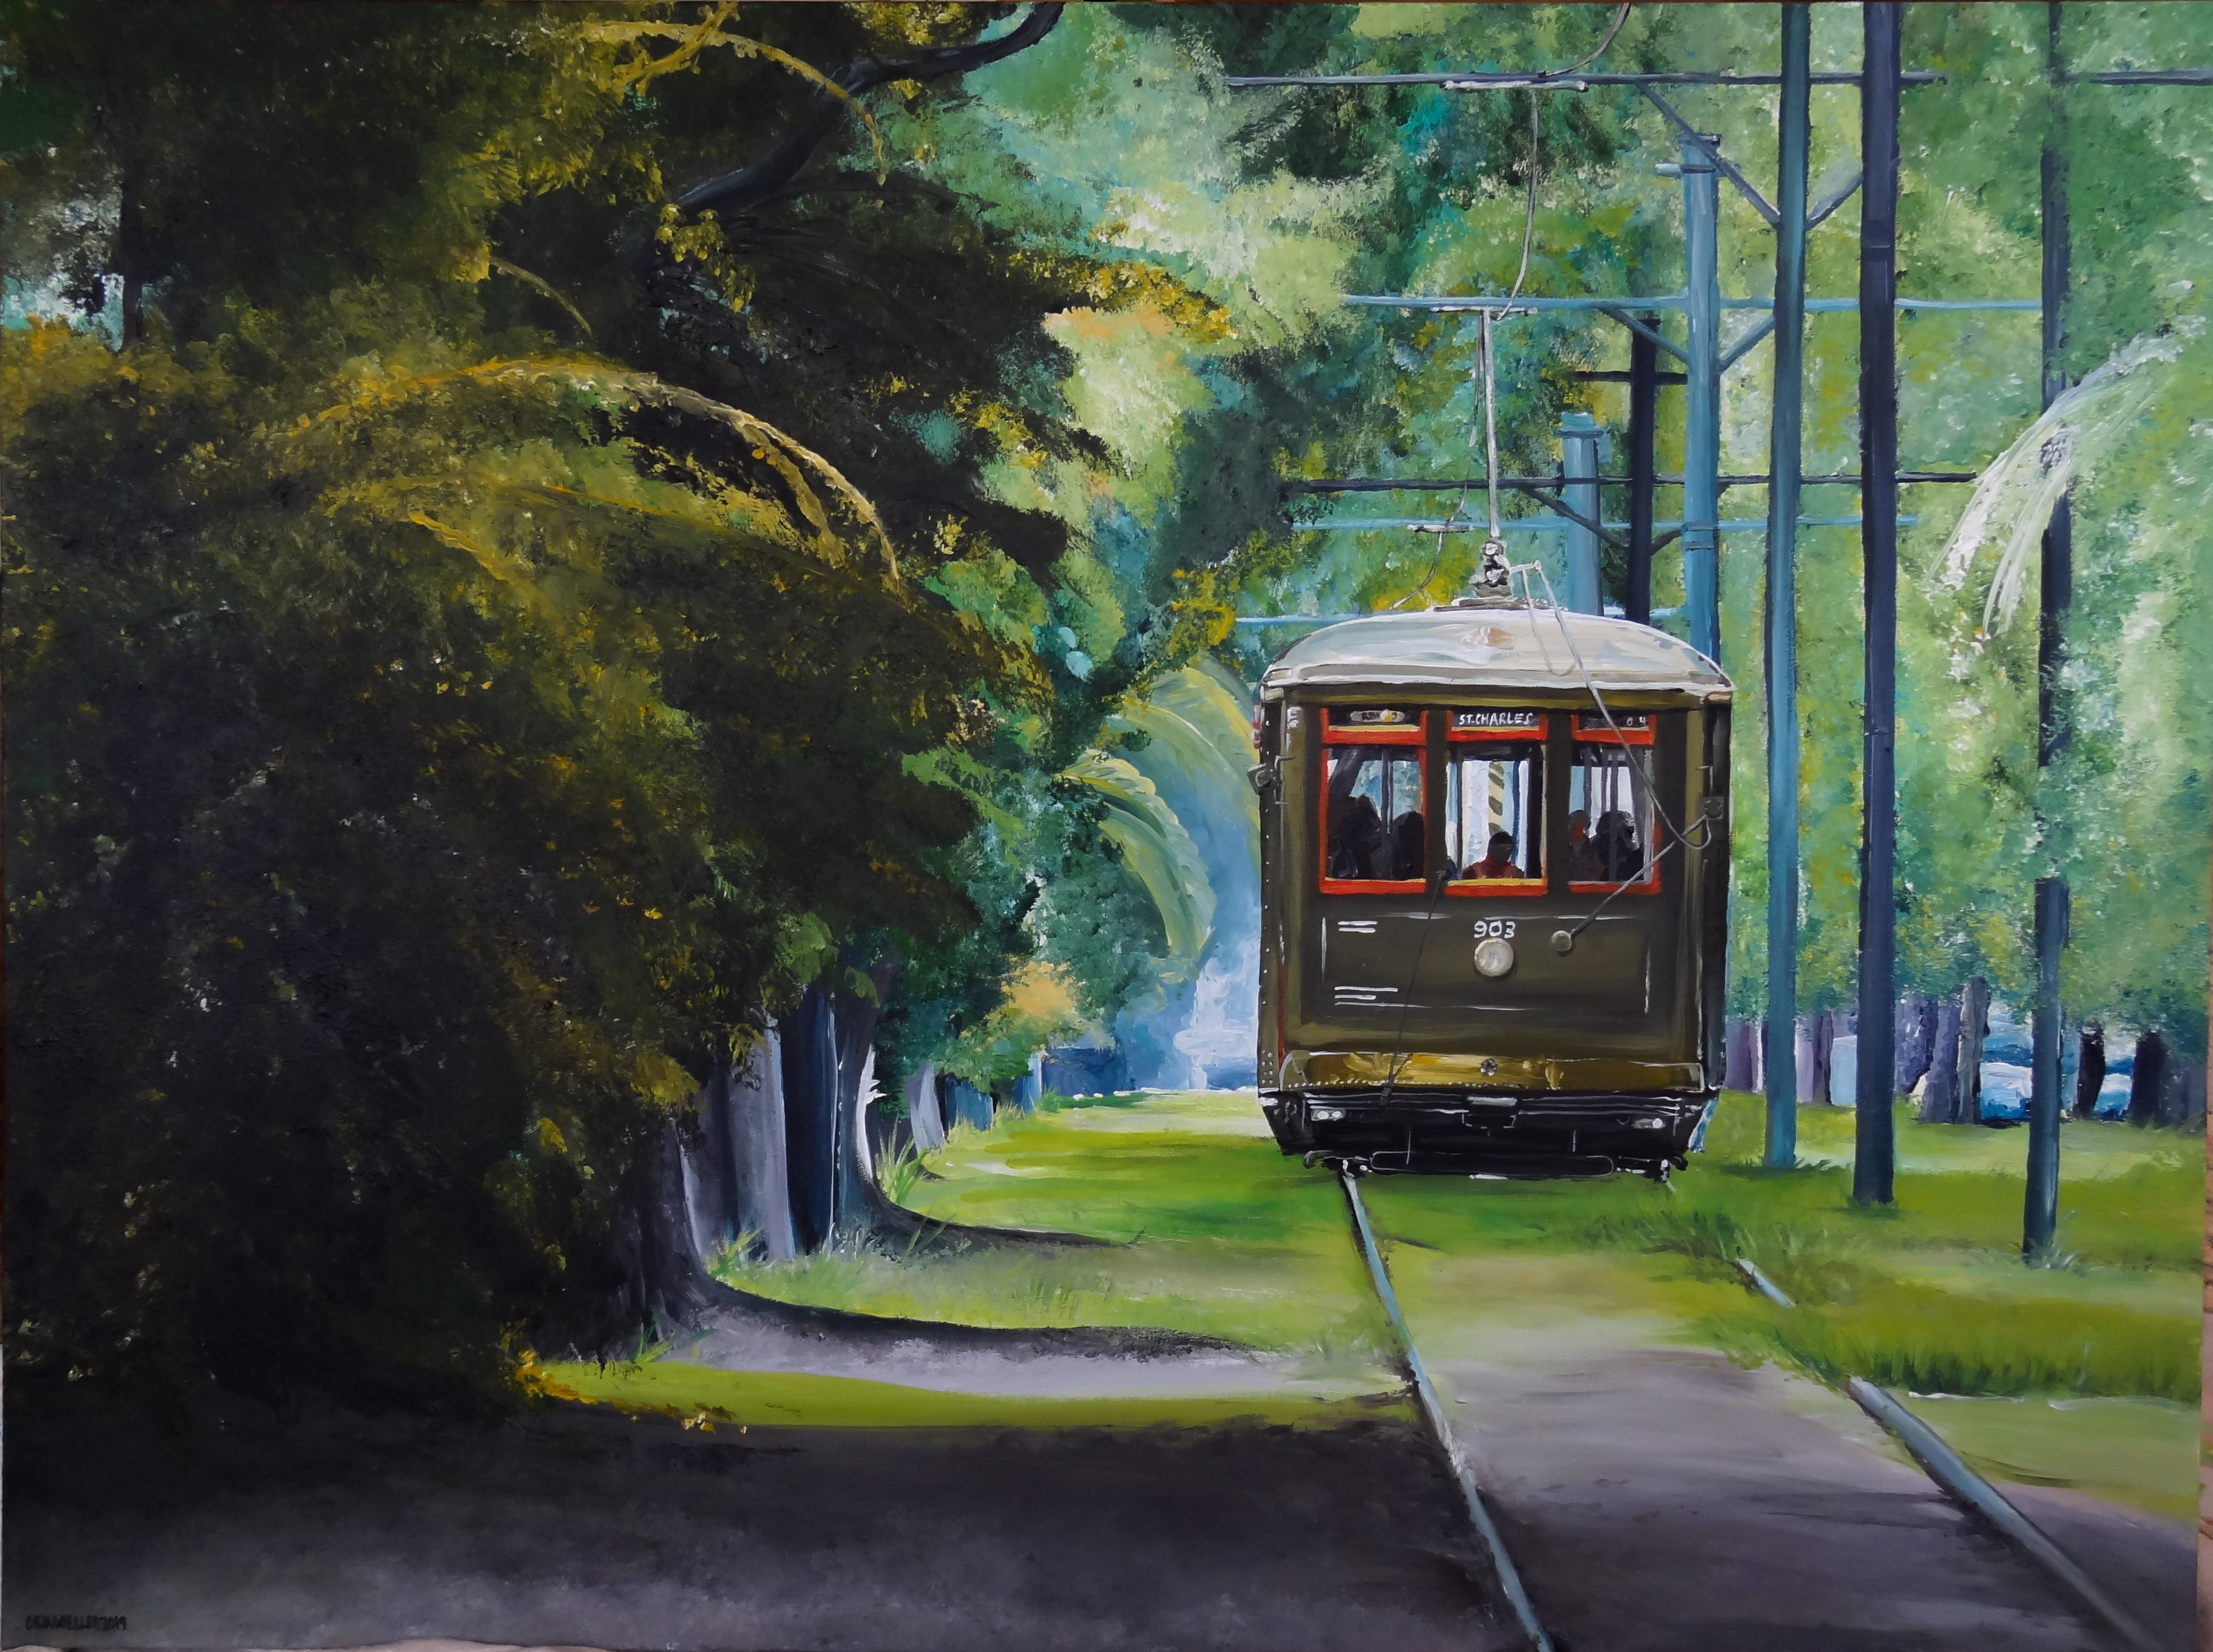 New Orleans Street Car (2019) - COMMISSION